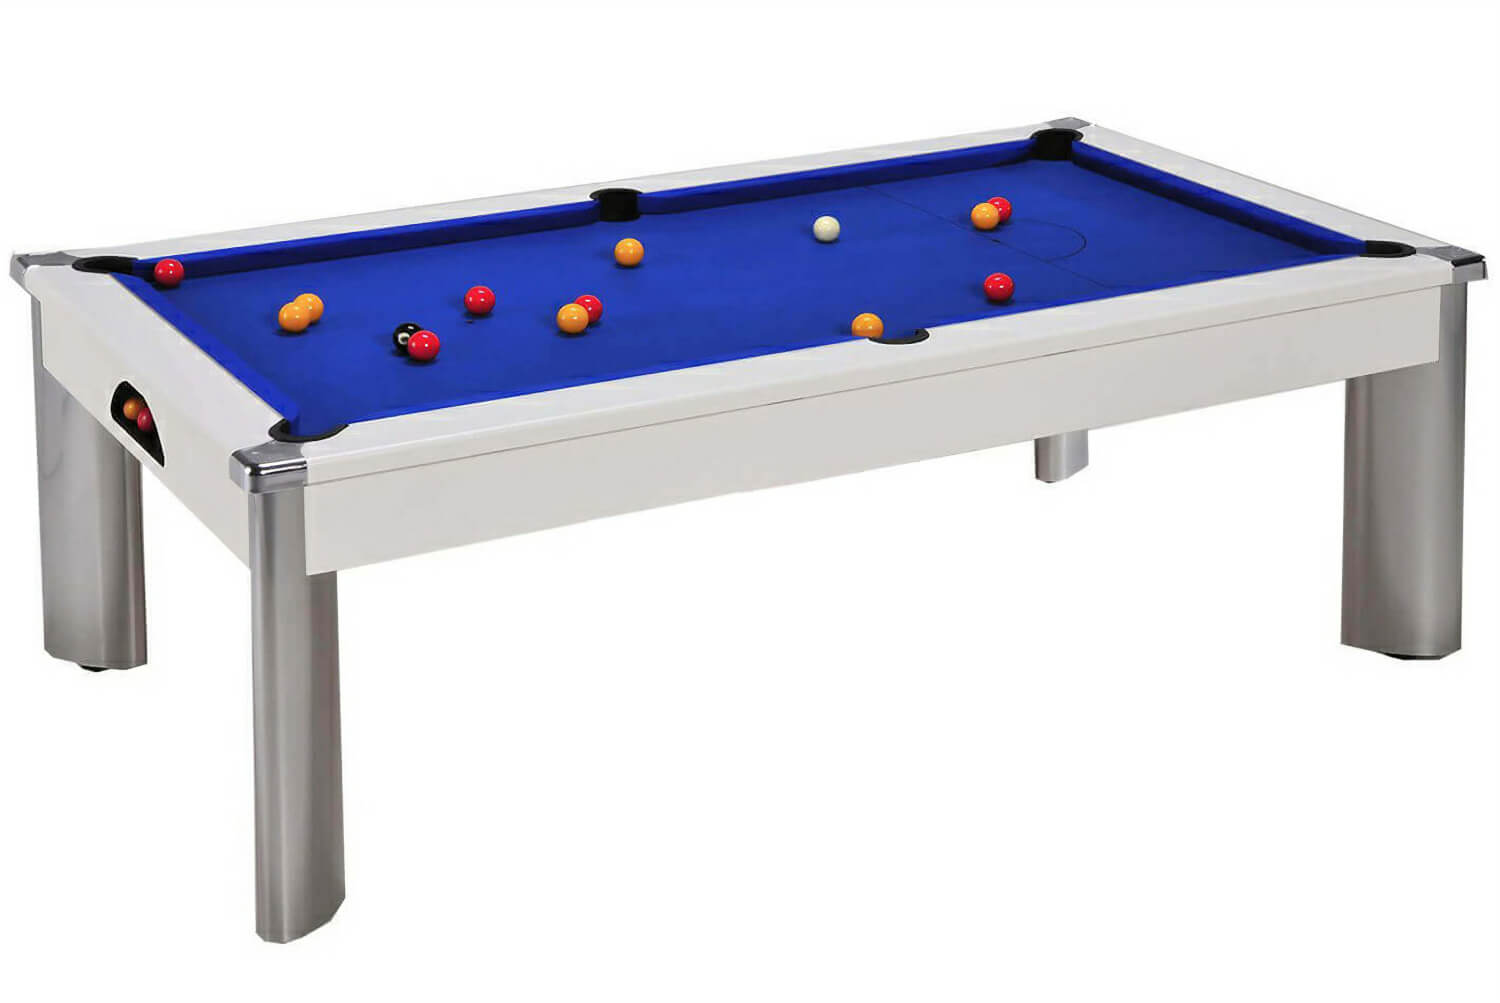 Fusion Outdoor Pool Dining Table 7 Ft Liberty Games: pool dining table